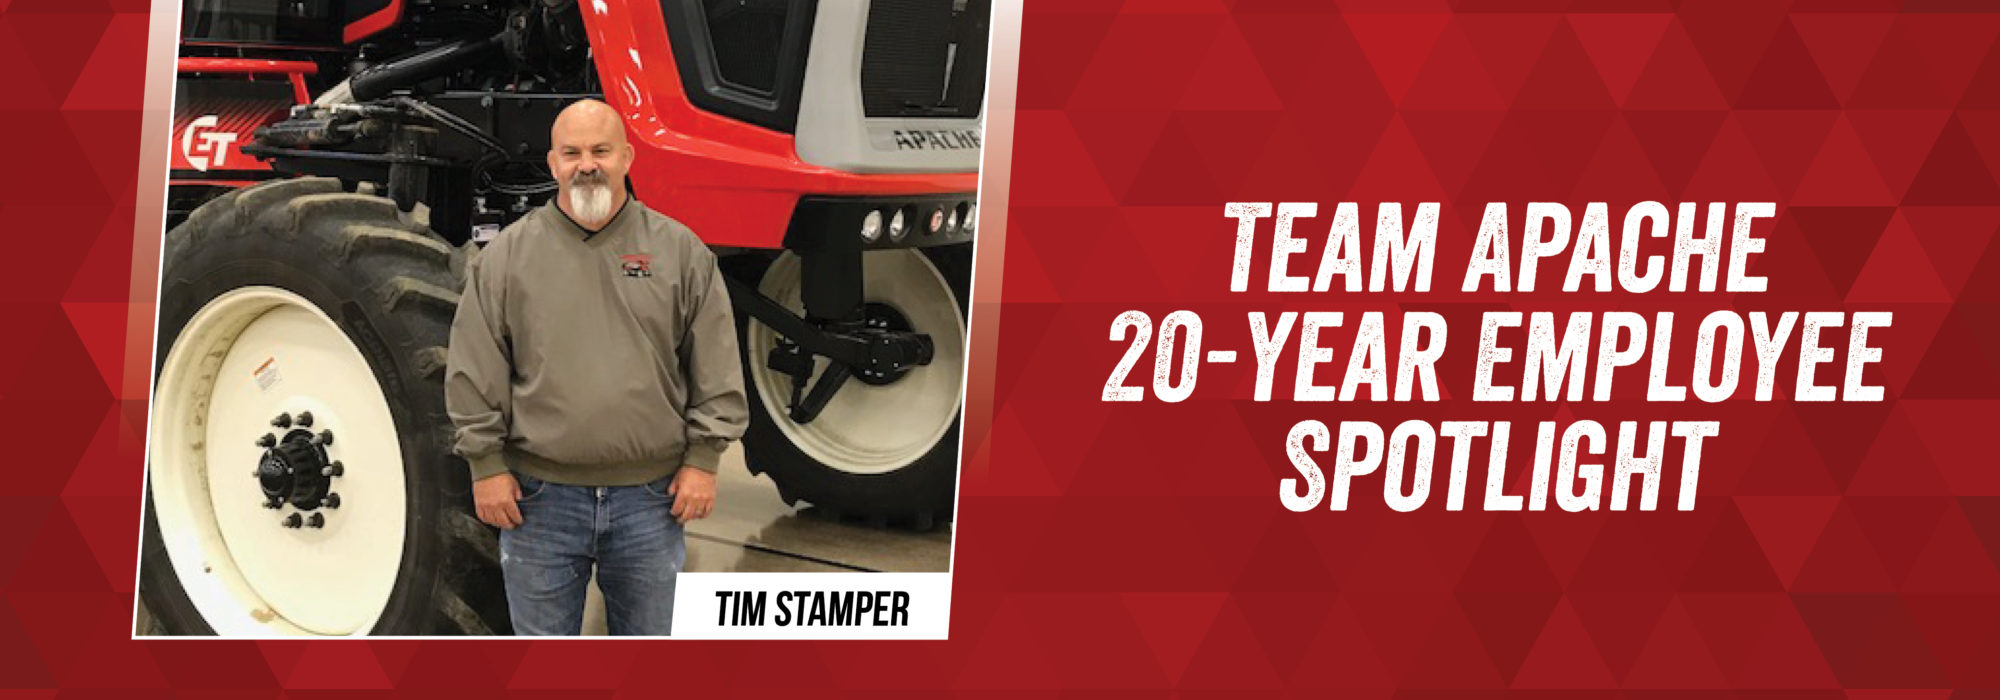 Team Apache - Tim Stamper 20-year journey